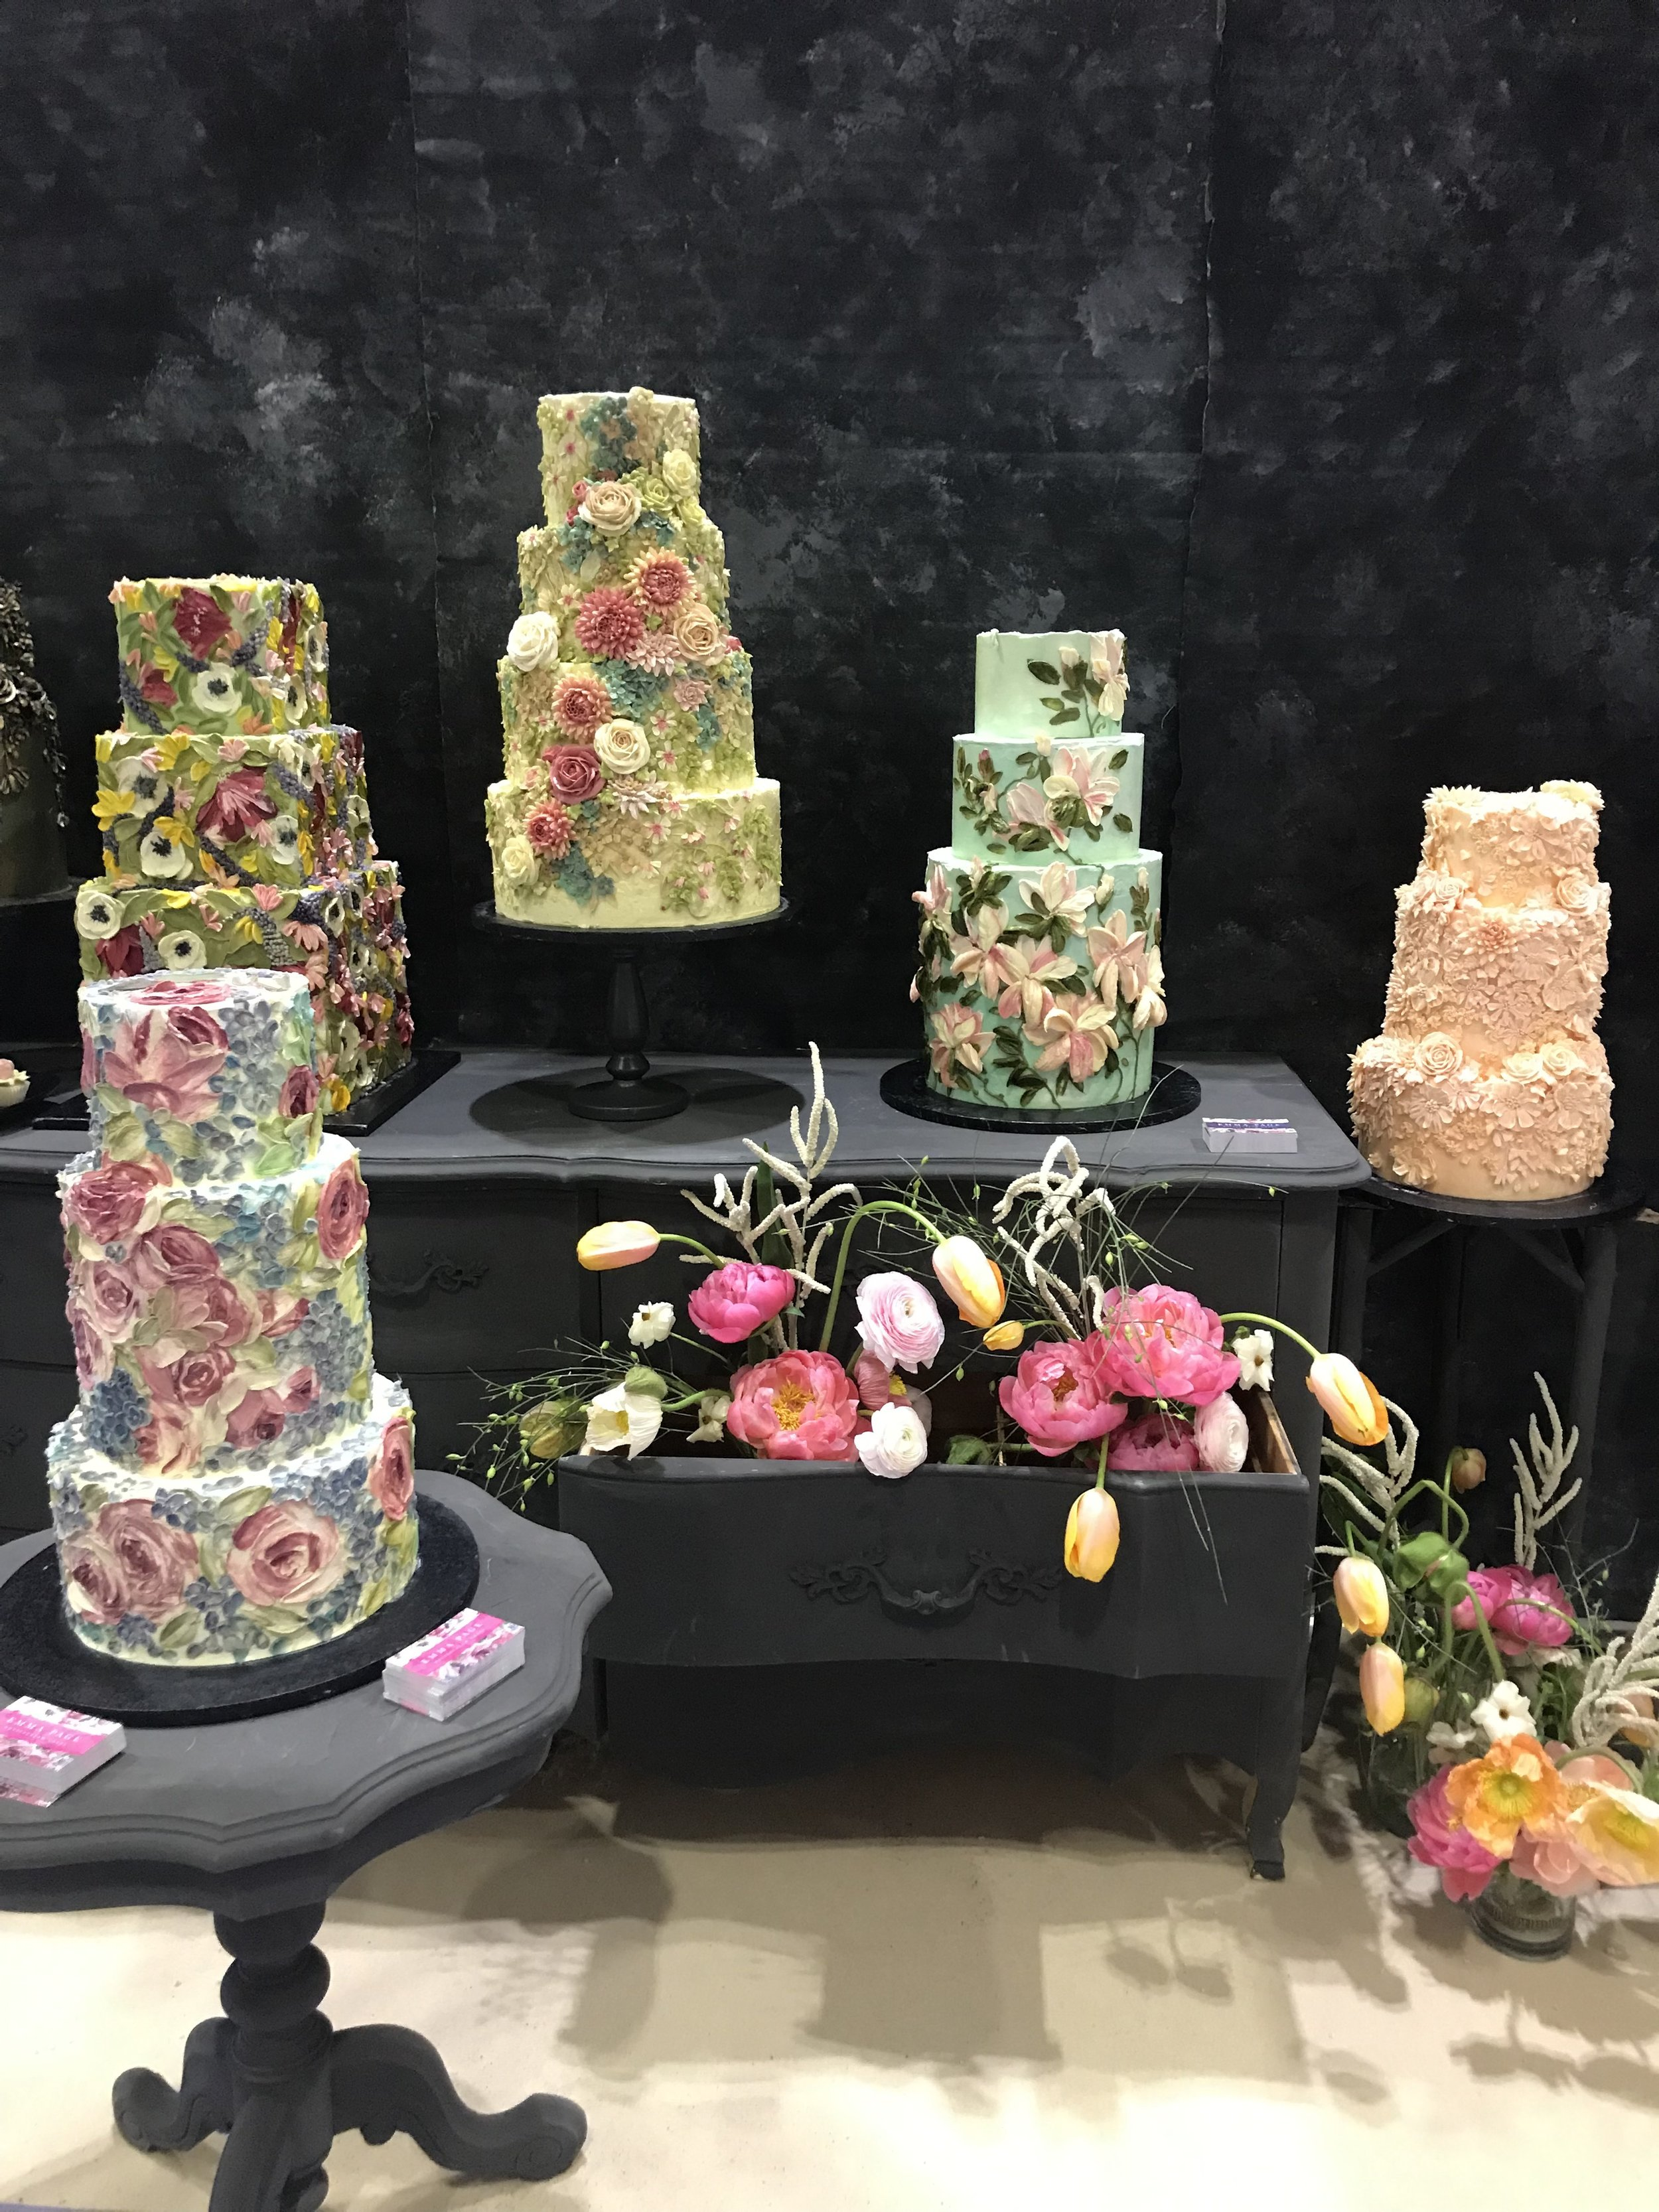 Buttercream wedding cakes displayed at the National Wedding Show 2019 by Emma Page Buttercream Cakes London